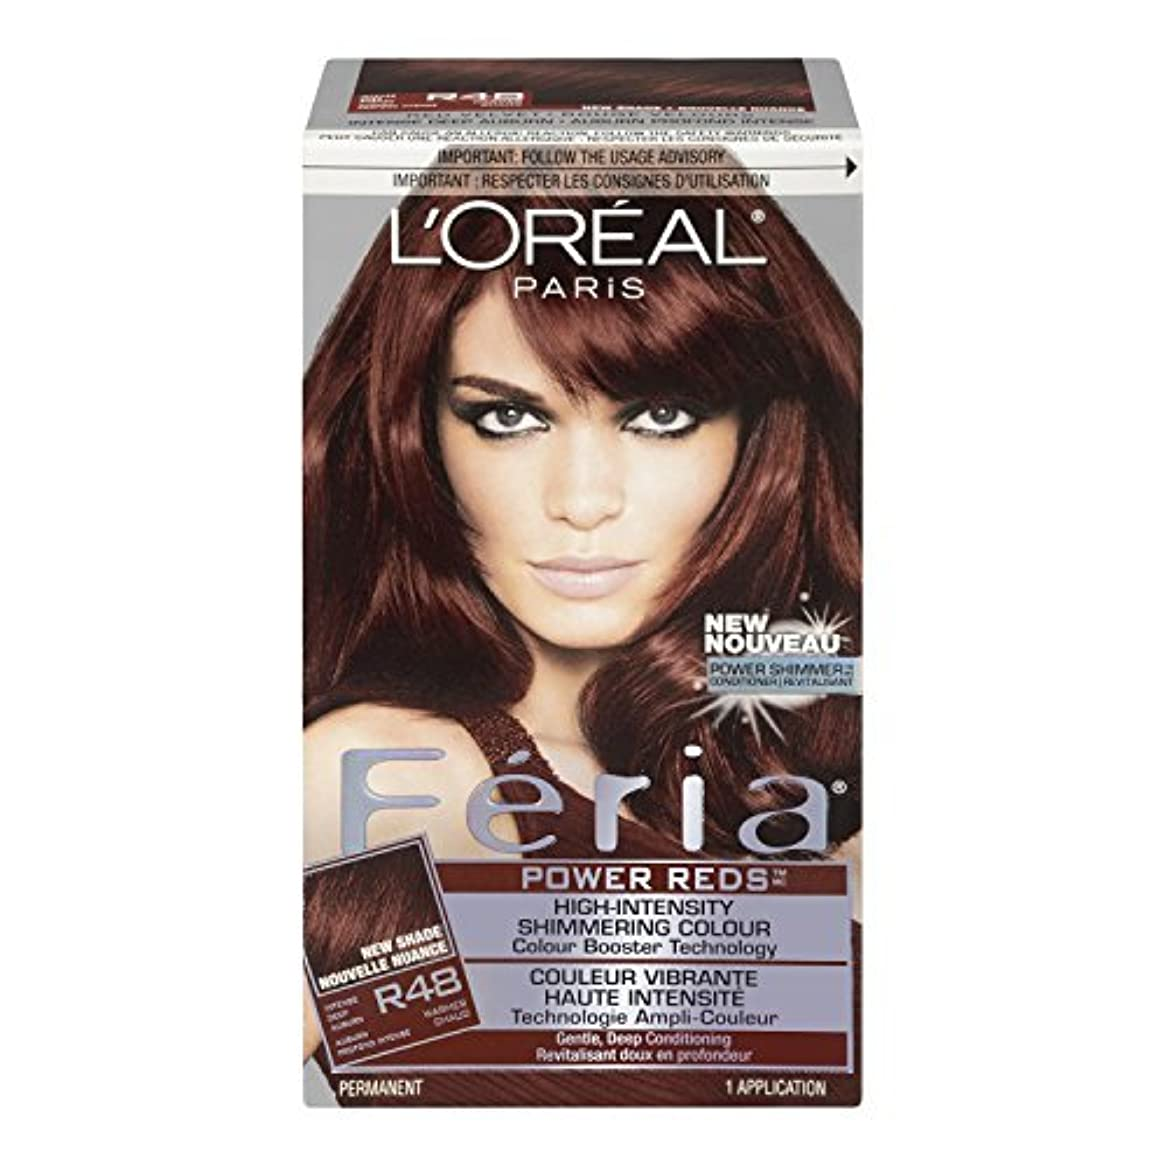 スリッパ多分故障中L'Oreal Feria Power Reds Hair Color, R48 Intense Deep Auburn/Red Velvet by L'Oreal Paris Hair Color [並行輸入品]